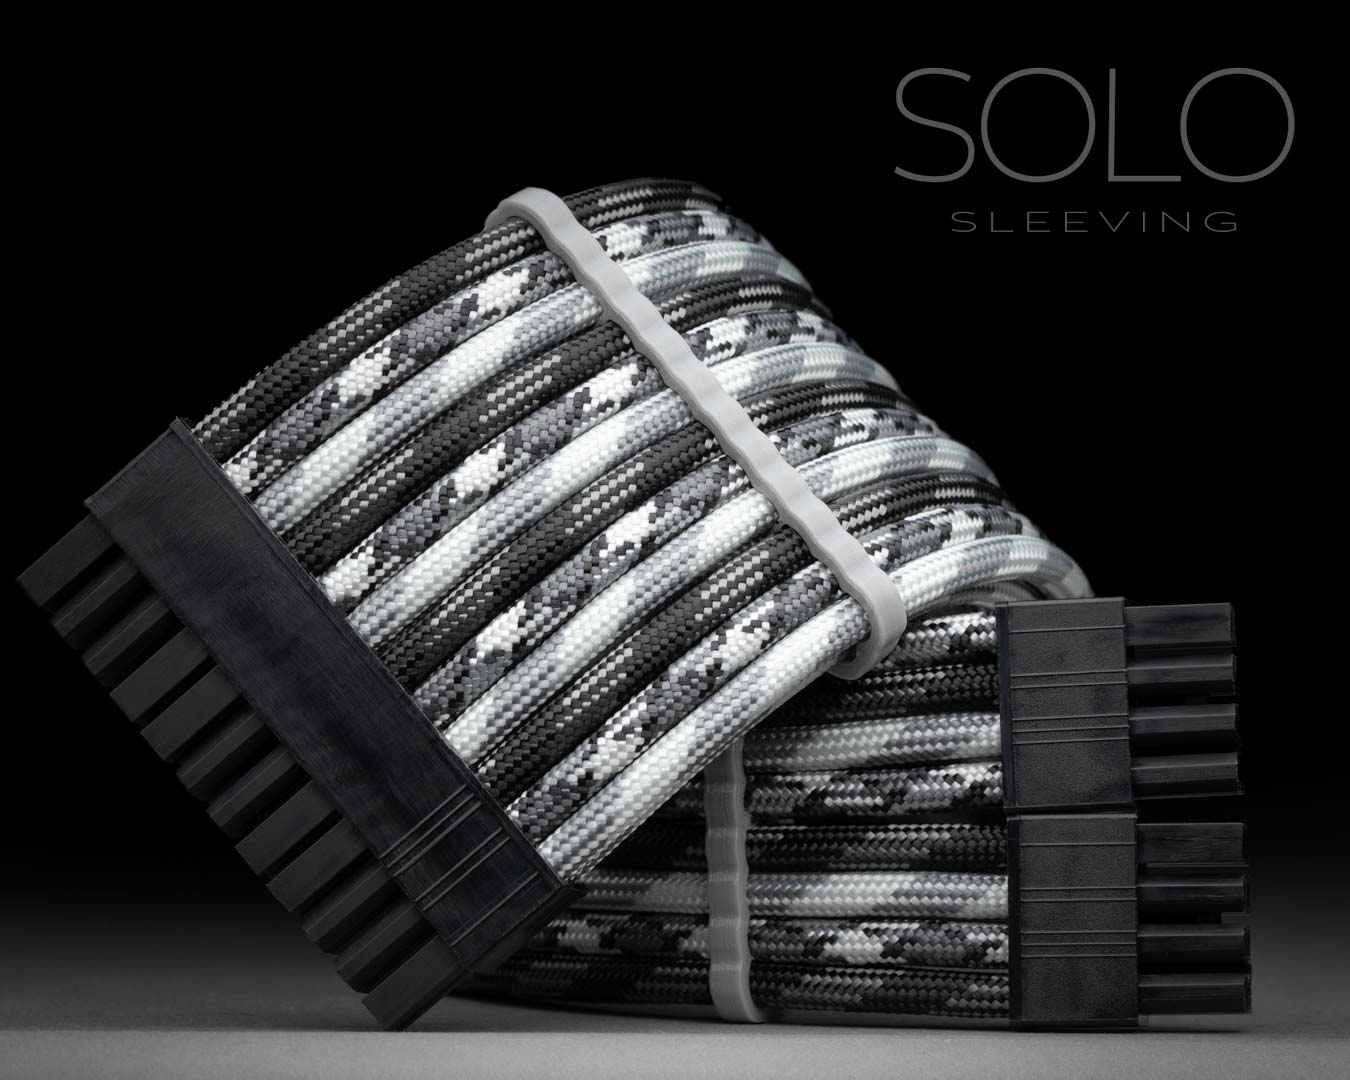 Black and White Themed PSU Cables